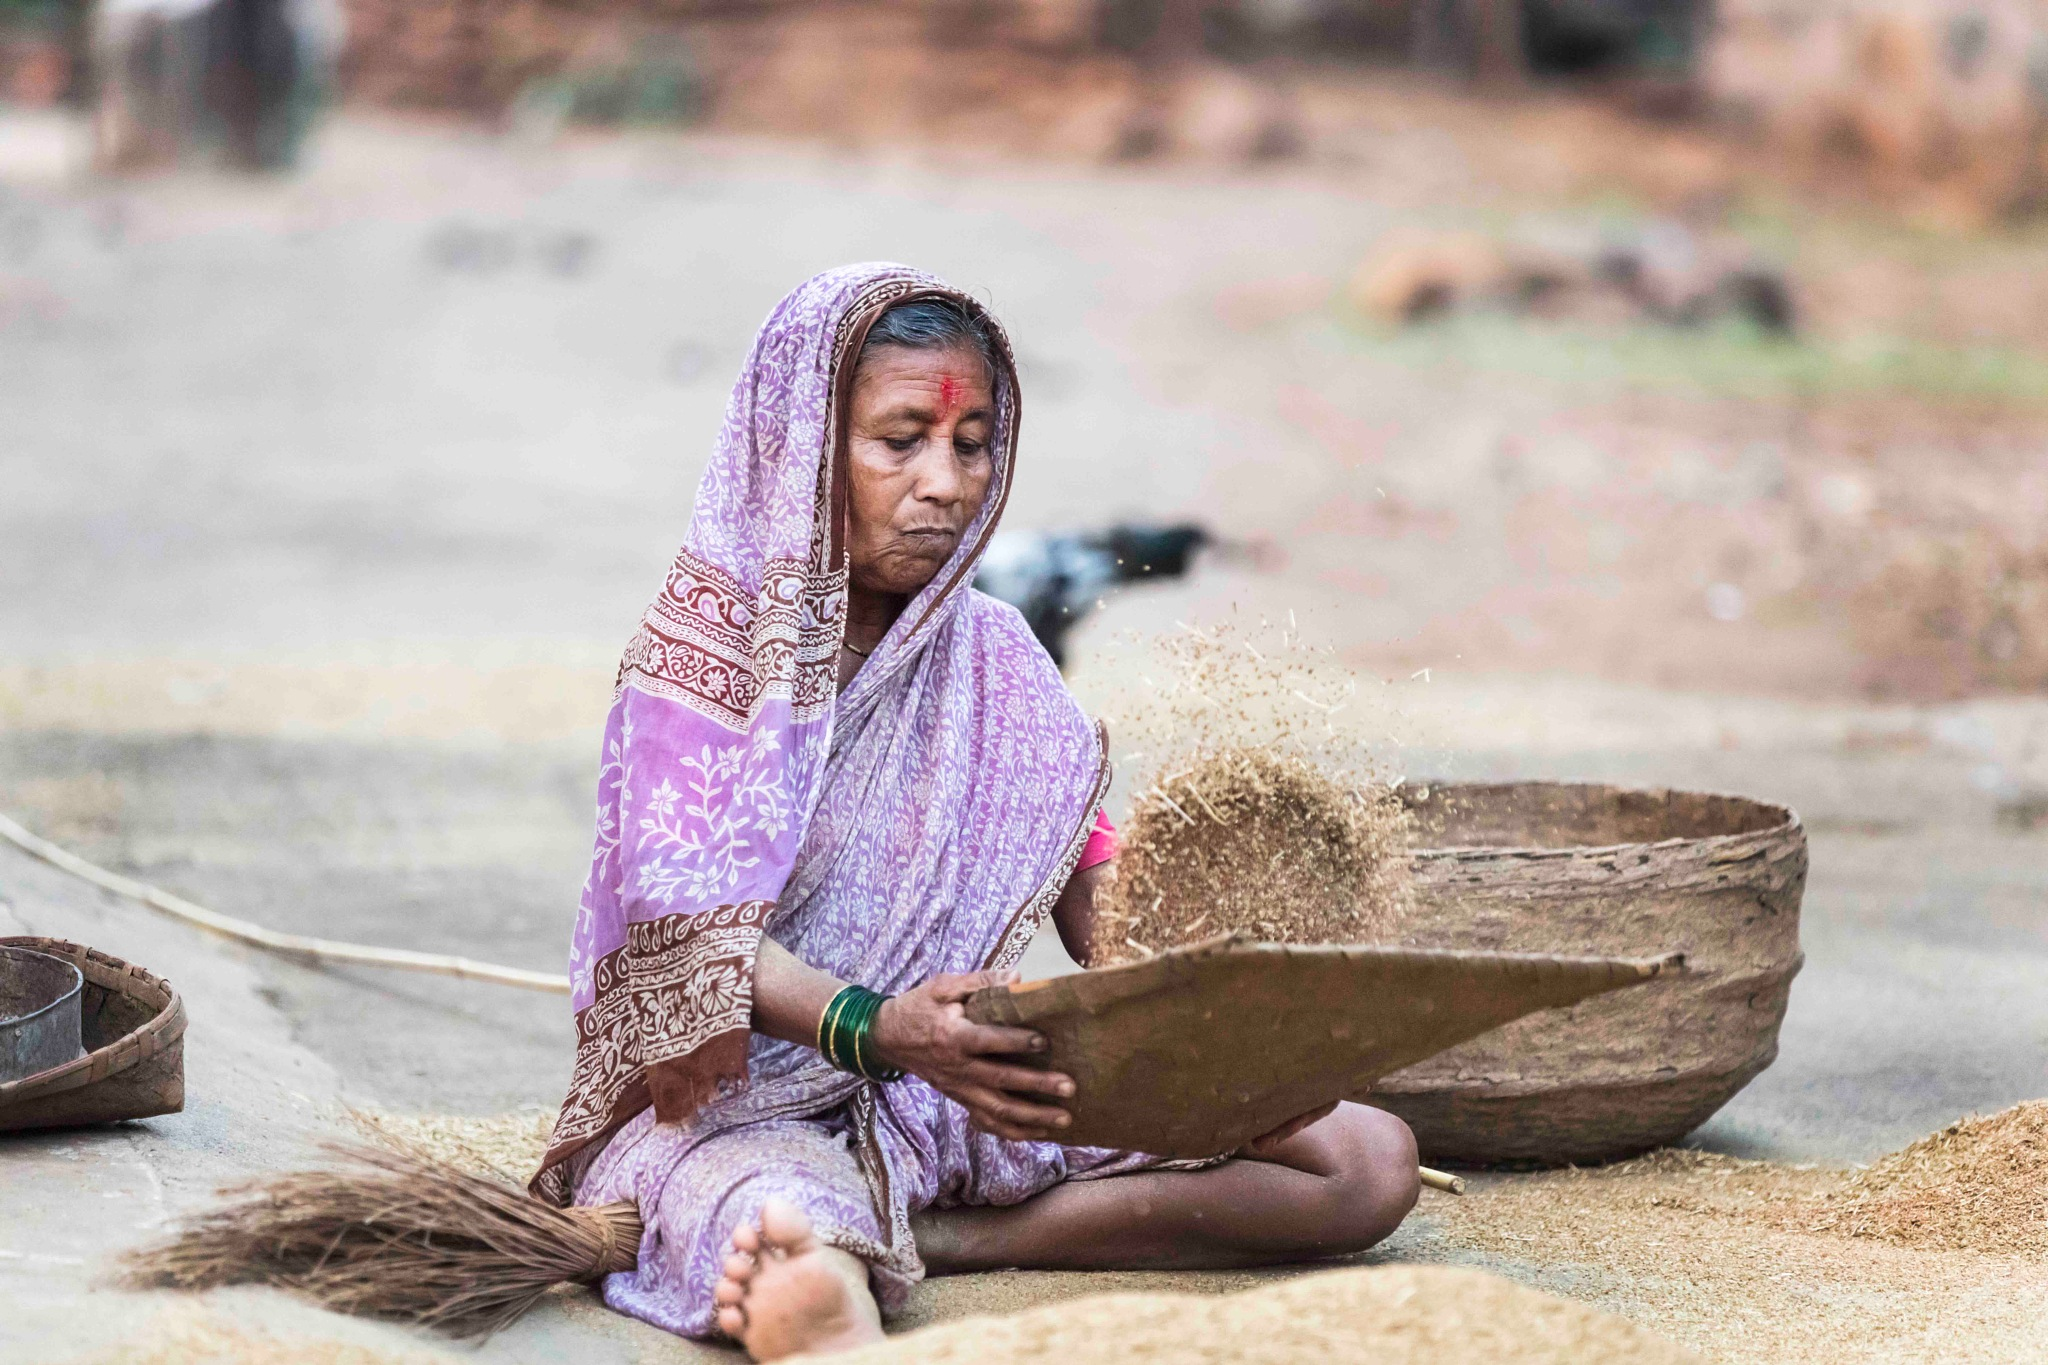 Wheat From The Chaff by Vikas Datta